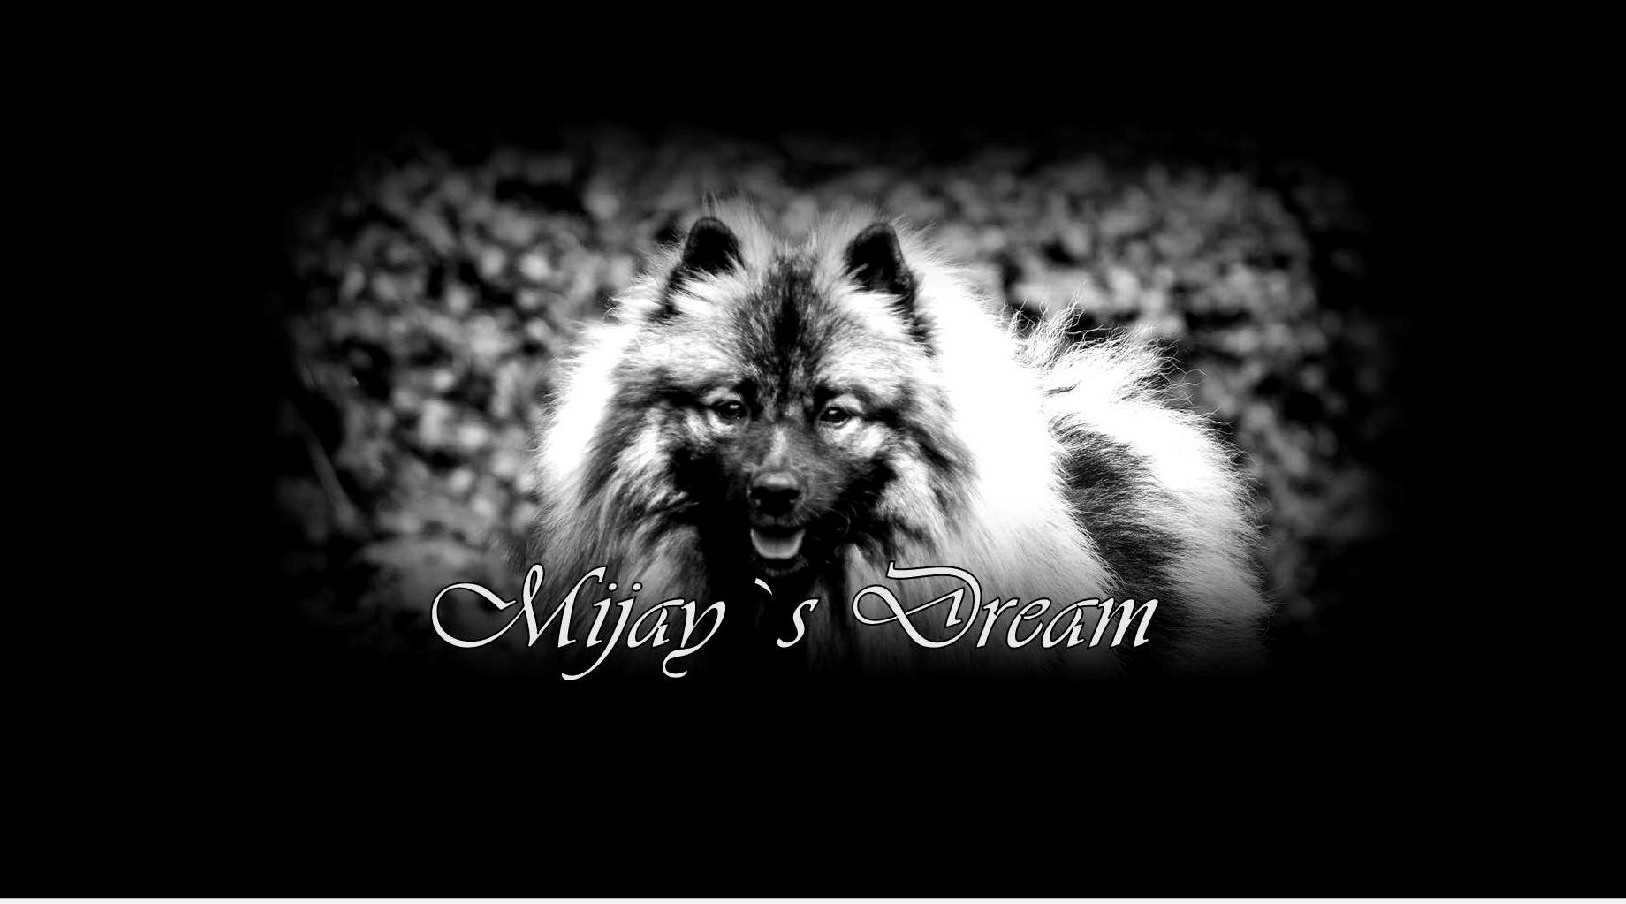 Mijay´s Dream.